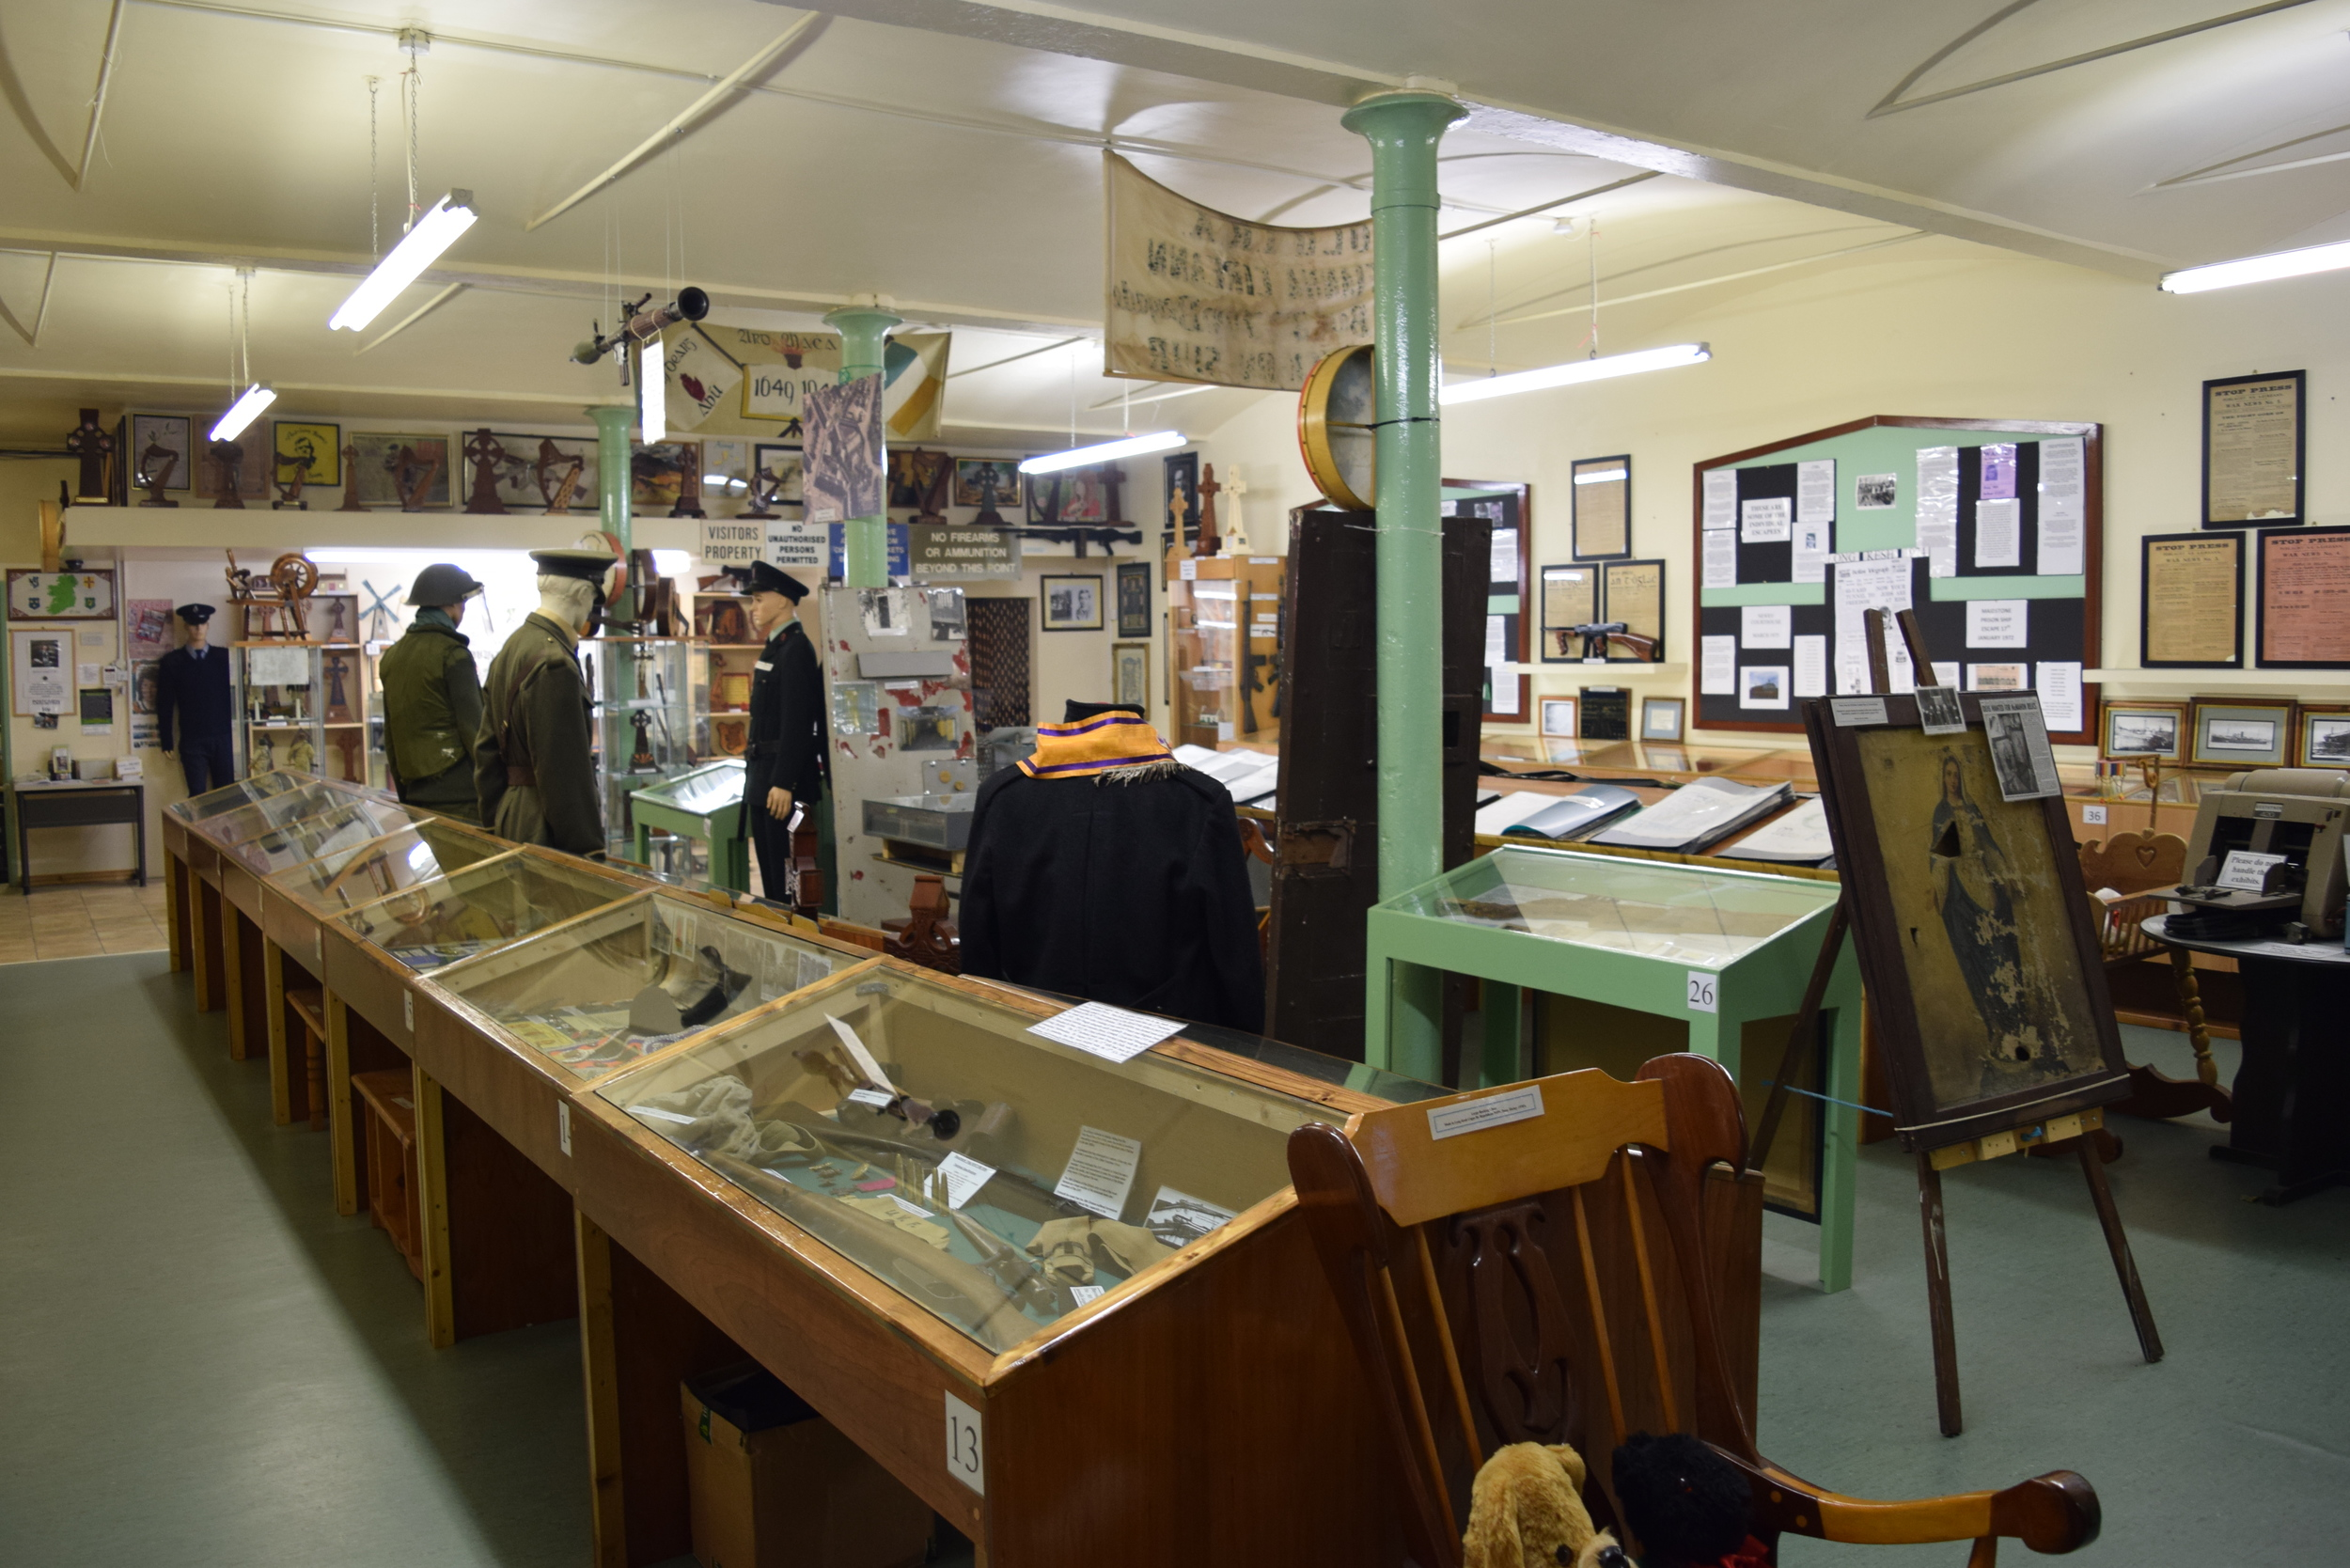 Displays in the small, but dense, Irish Republican History Museum